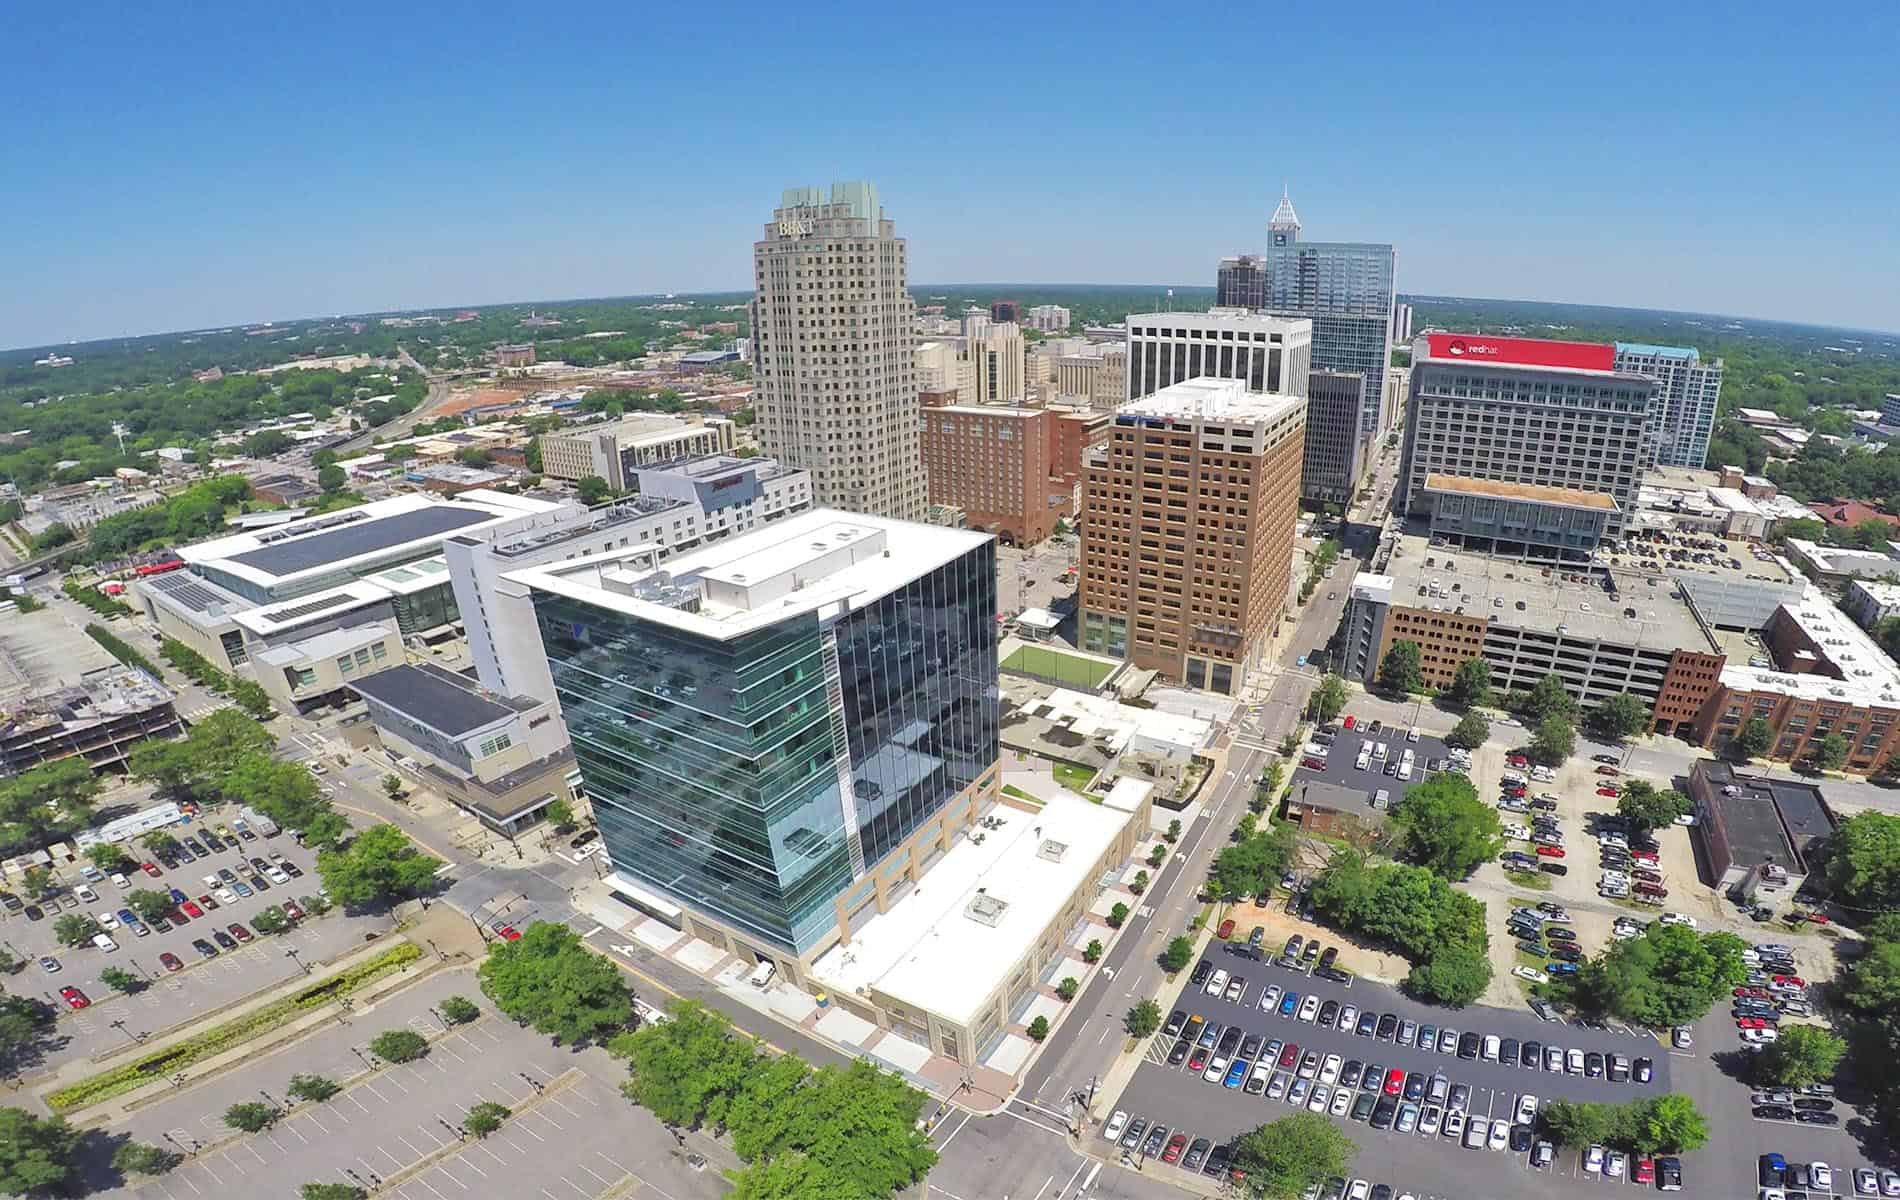 Aerial photo of Downtown Raleigh.